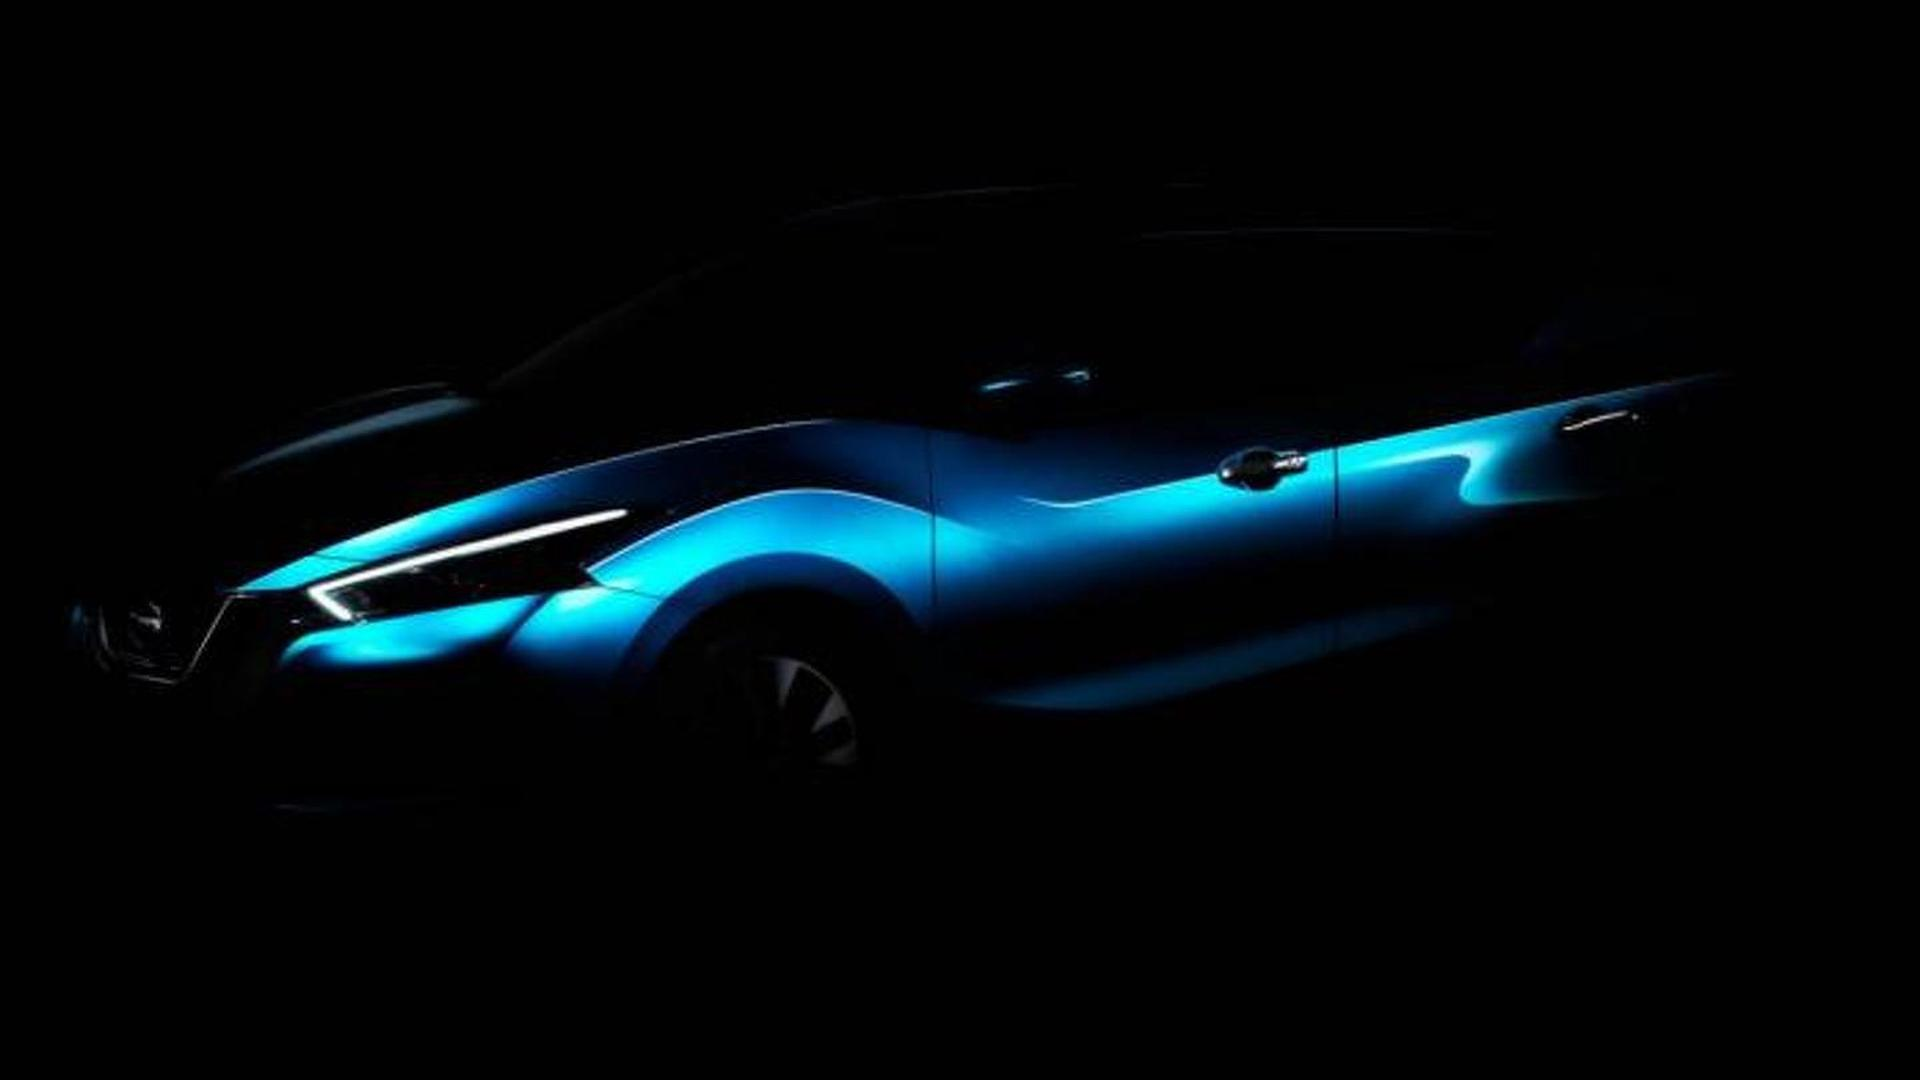 Nissan Lannia production version teased once again ahead of April 20 reveal [video]